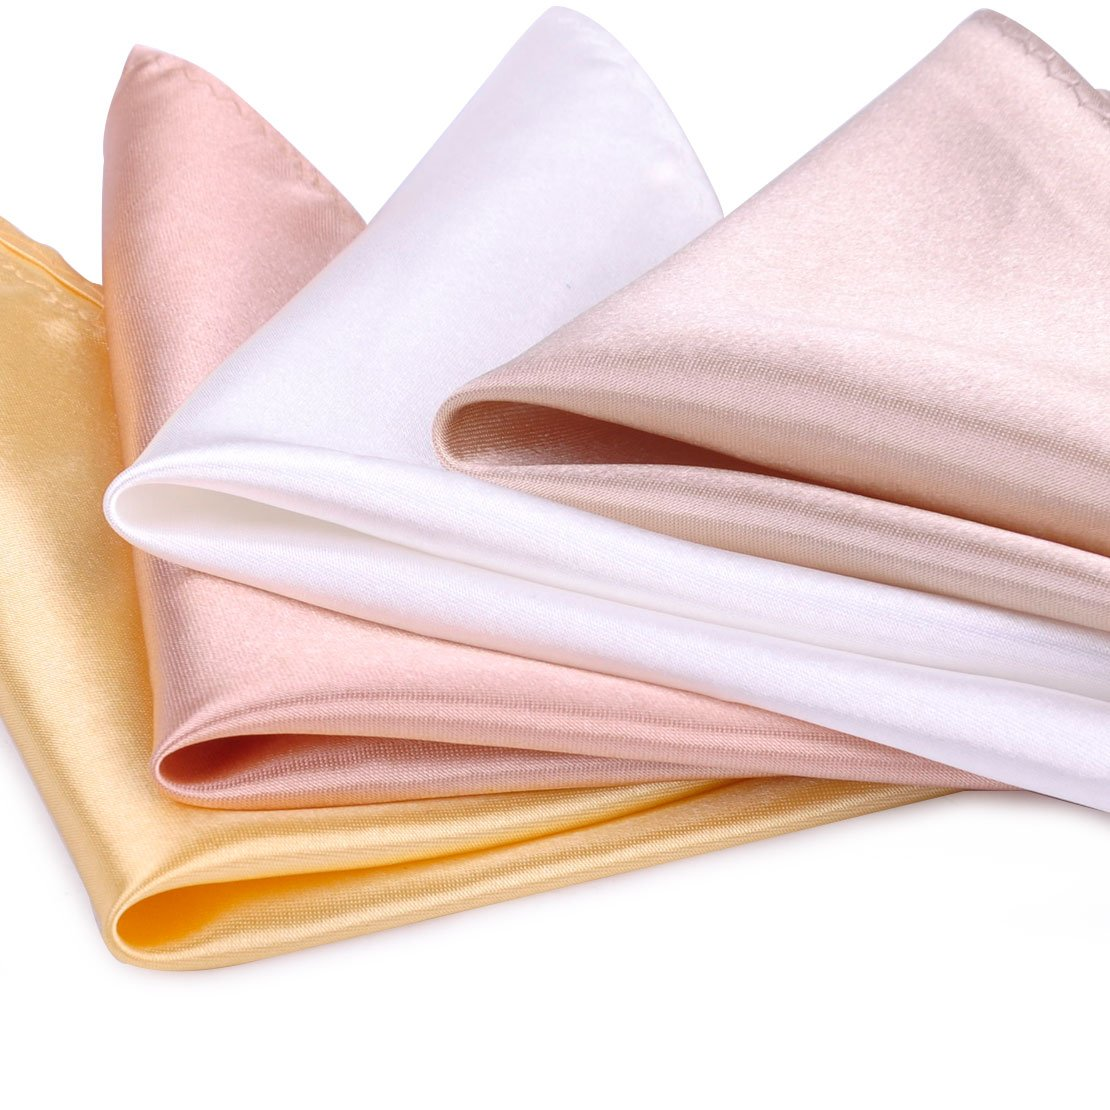 26 Pack Men's Silk Pocket Square Handkerchief Hanky Wedding Party Gift ciciTree by ciciTree (Image #4)